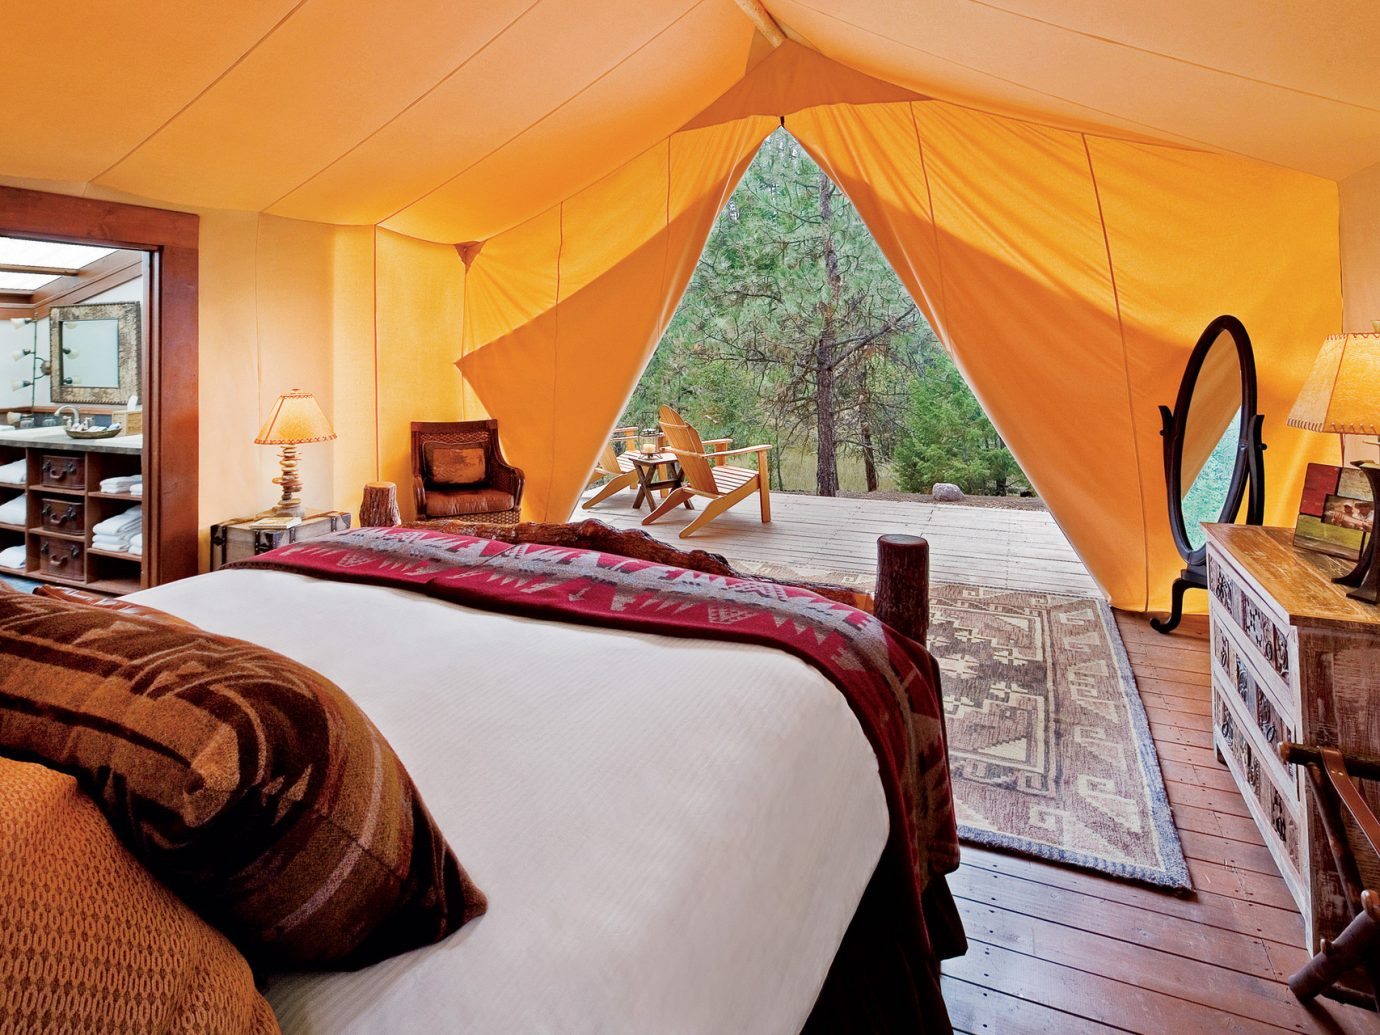 Bedroom at The Resort at Paws Up, Montana